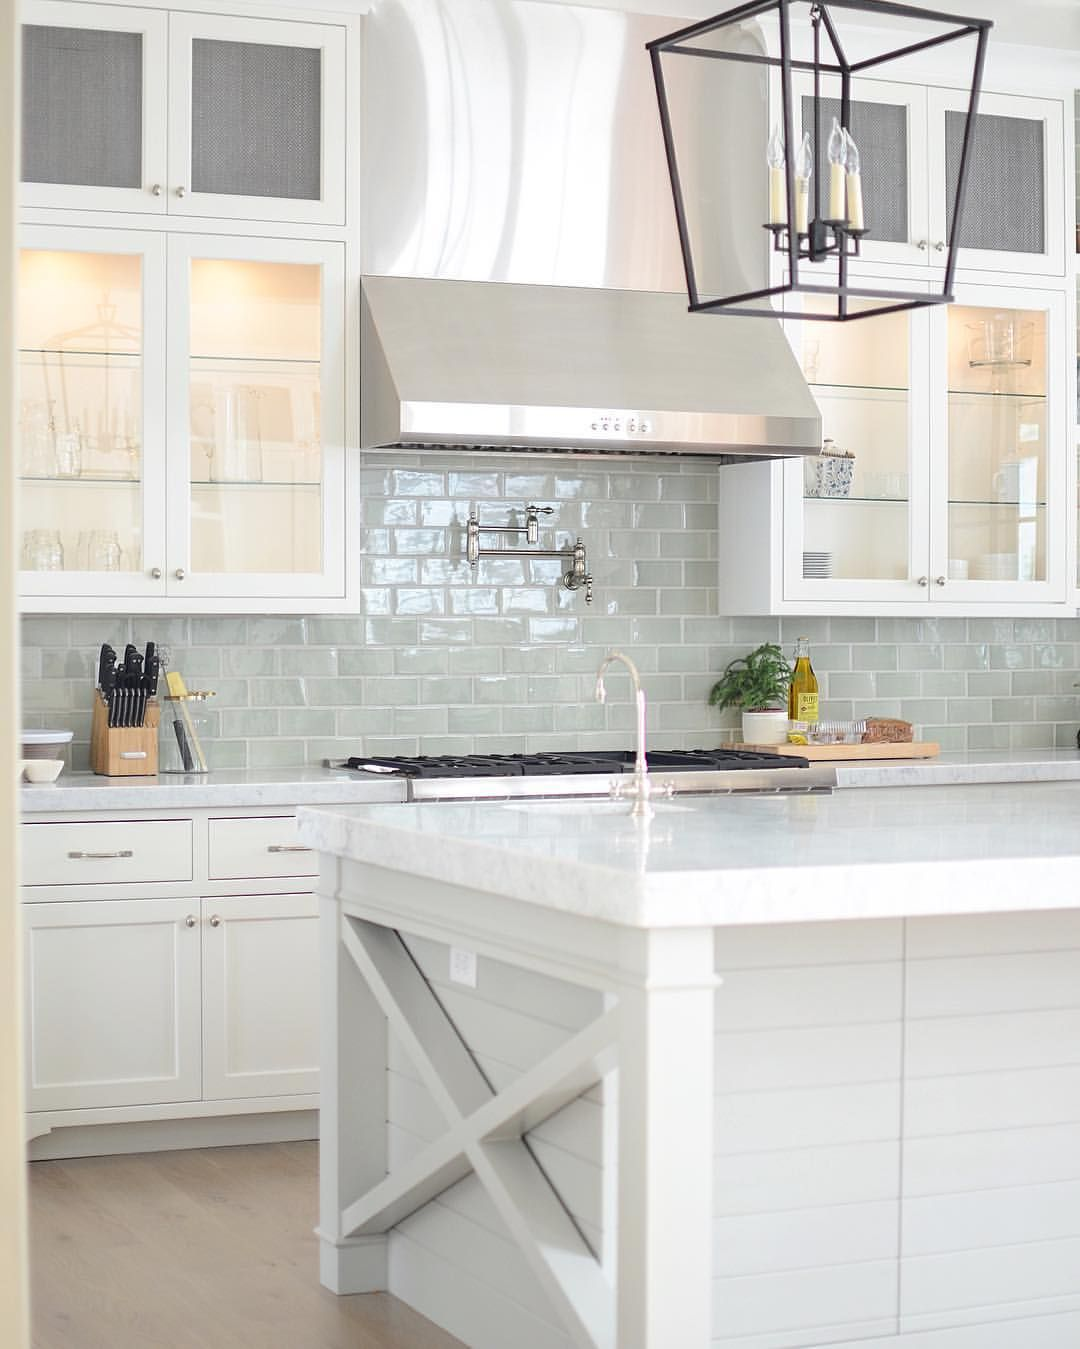 Bright white kitchen with pale blue subway tile backsplash bright white kitchen with pale blue subway tile backsplash dailygadgetfo Images